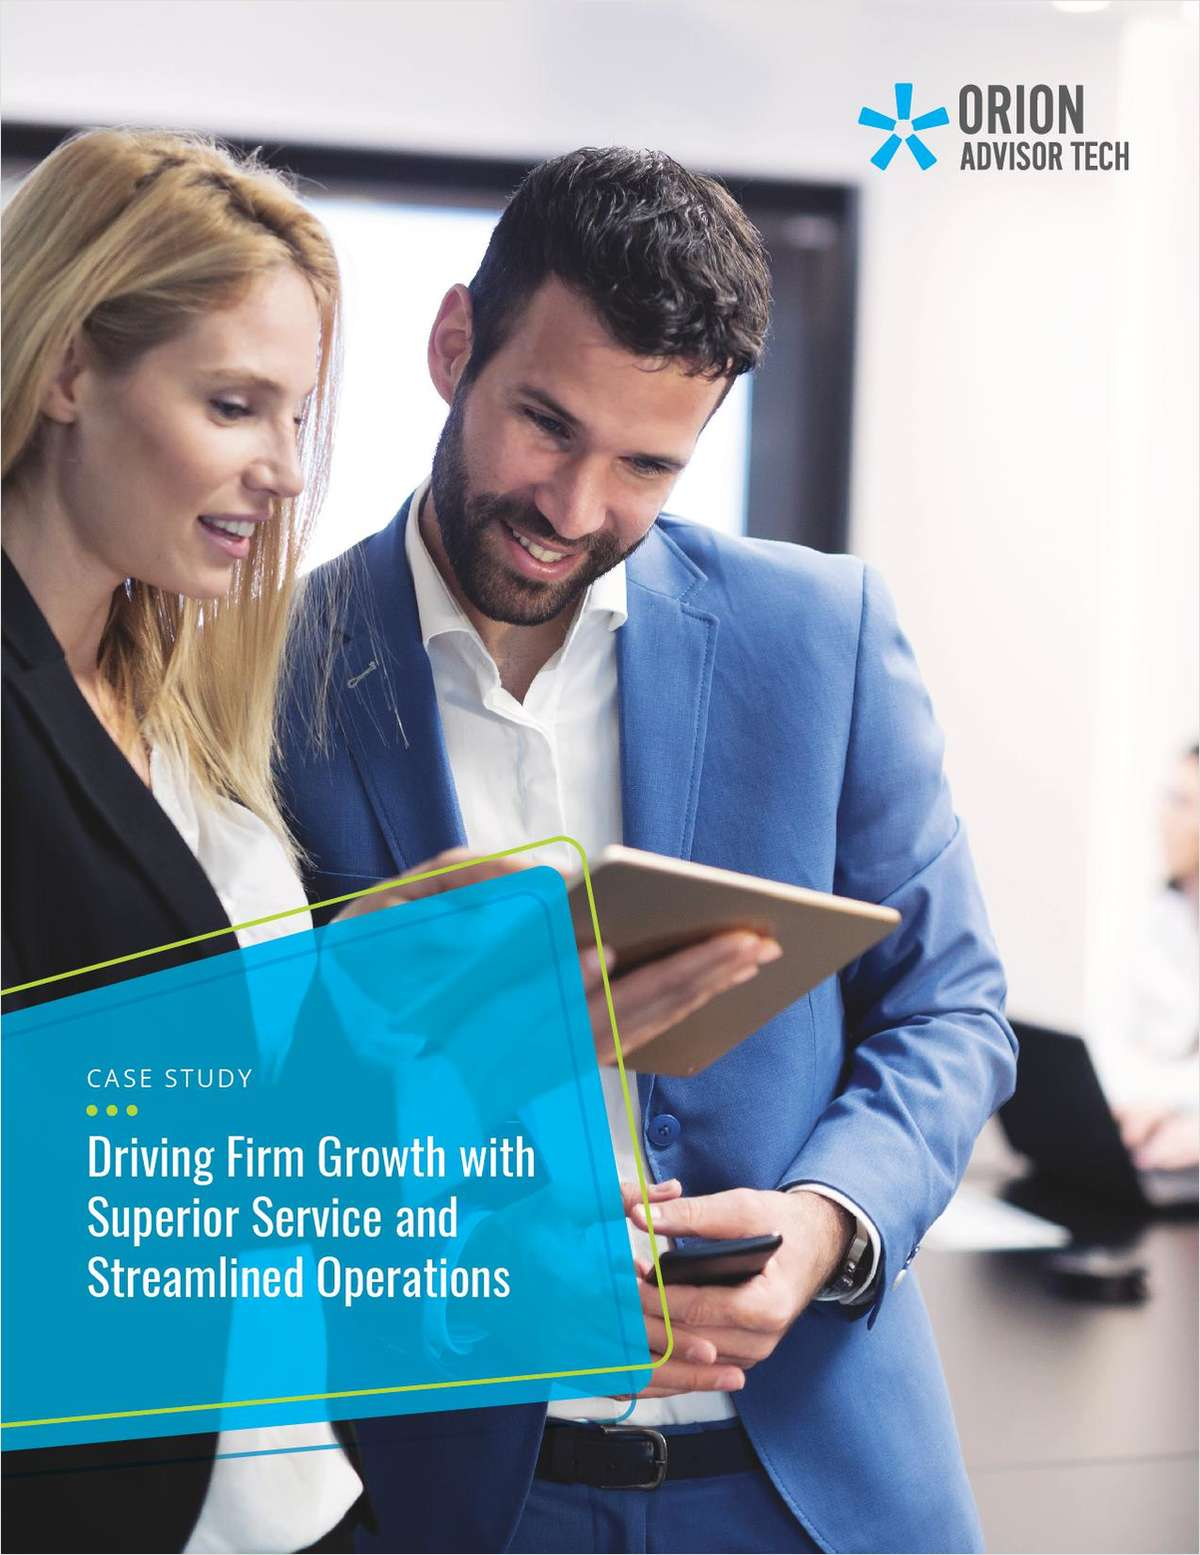 Case Study: Driving Firm Growth with Superior Service and Streamlined Operations